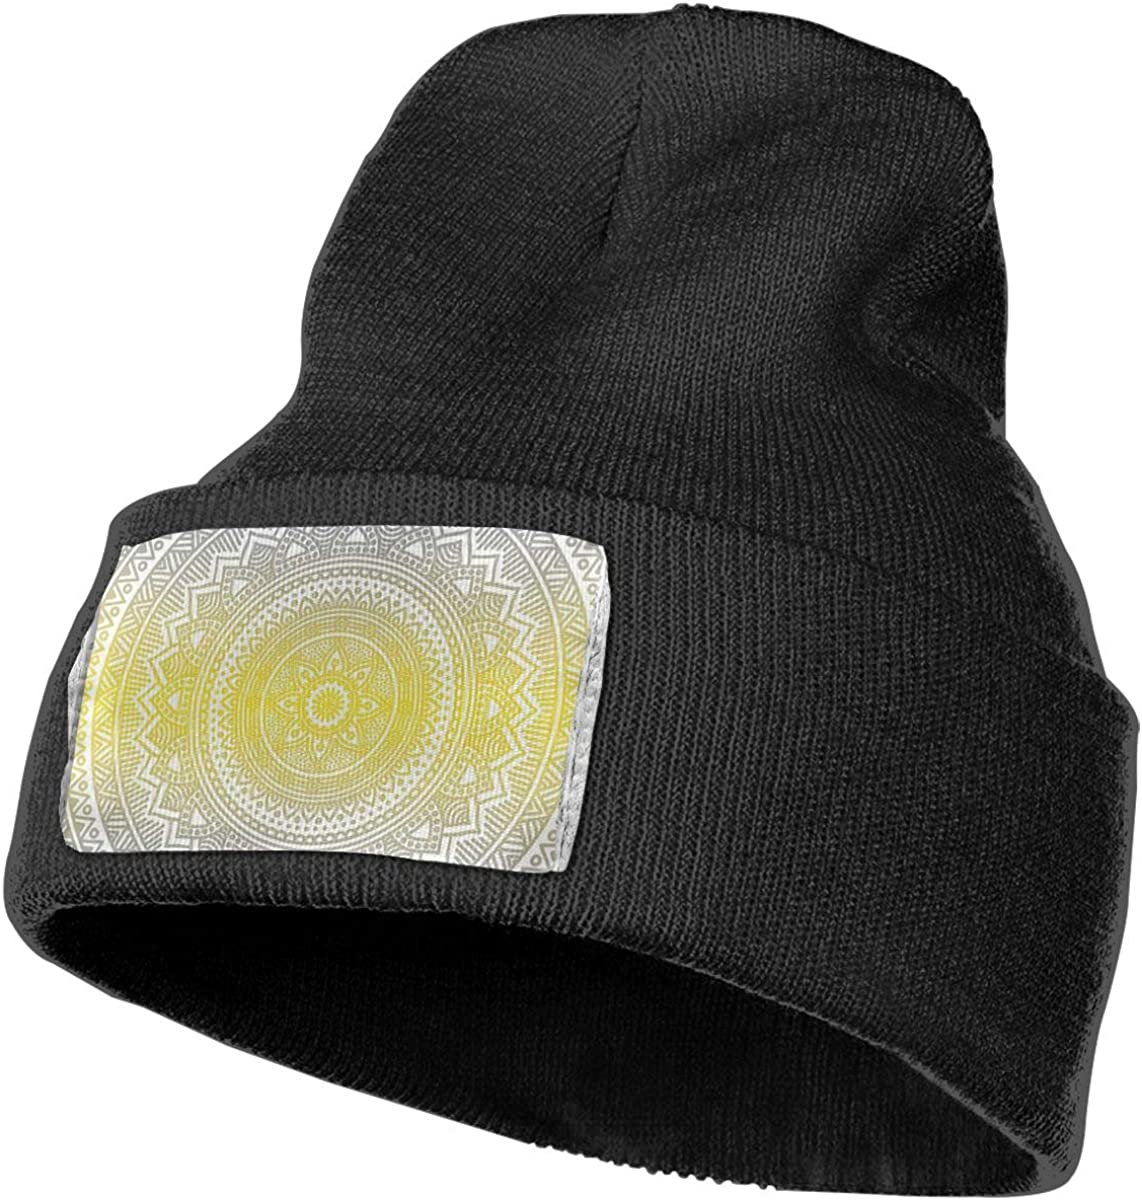 Xugui Grey and Yellow Beanie Hat Mens Womens Soft Warm Cap Personalized Skull Hats